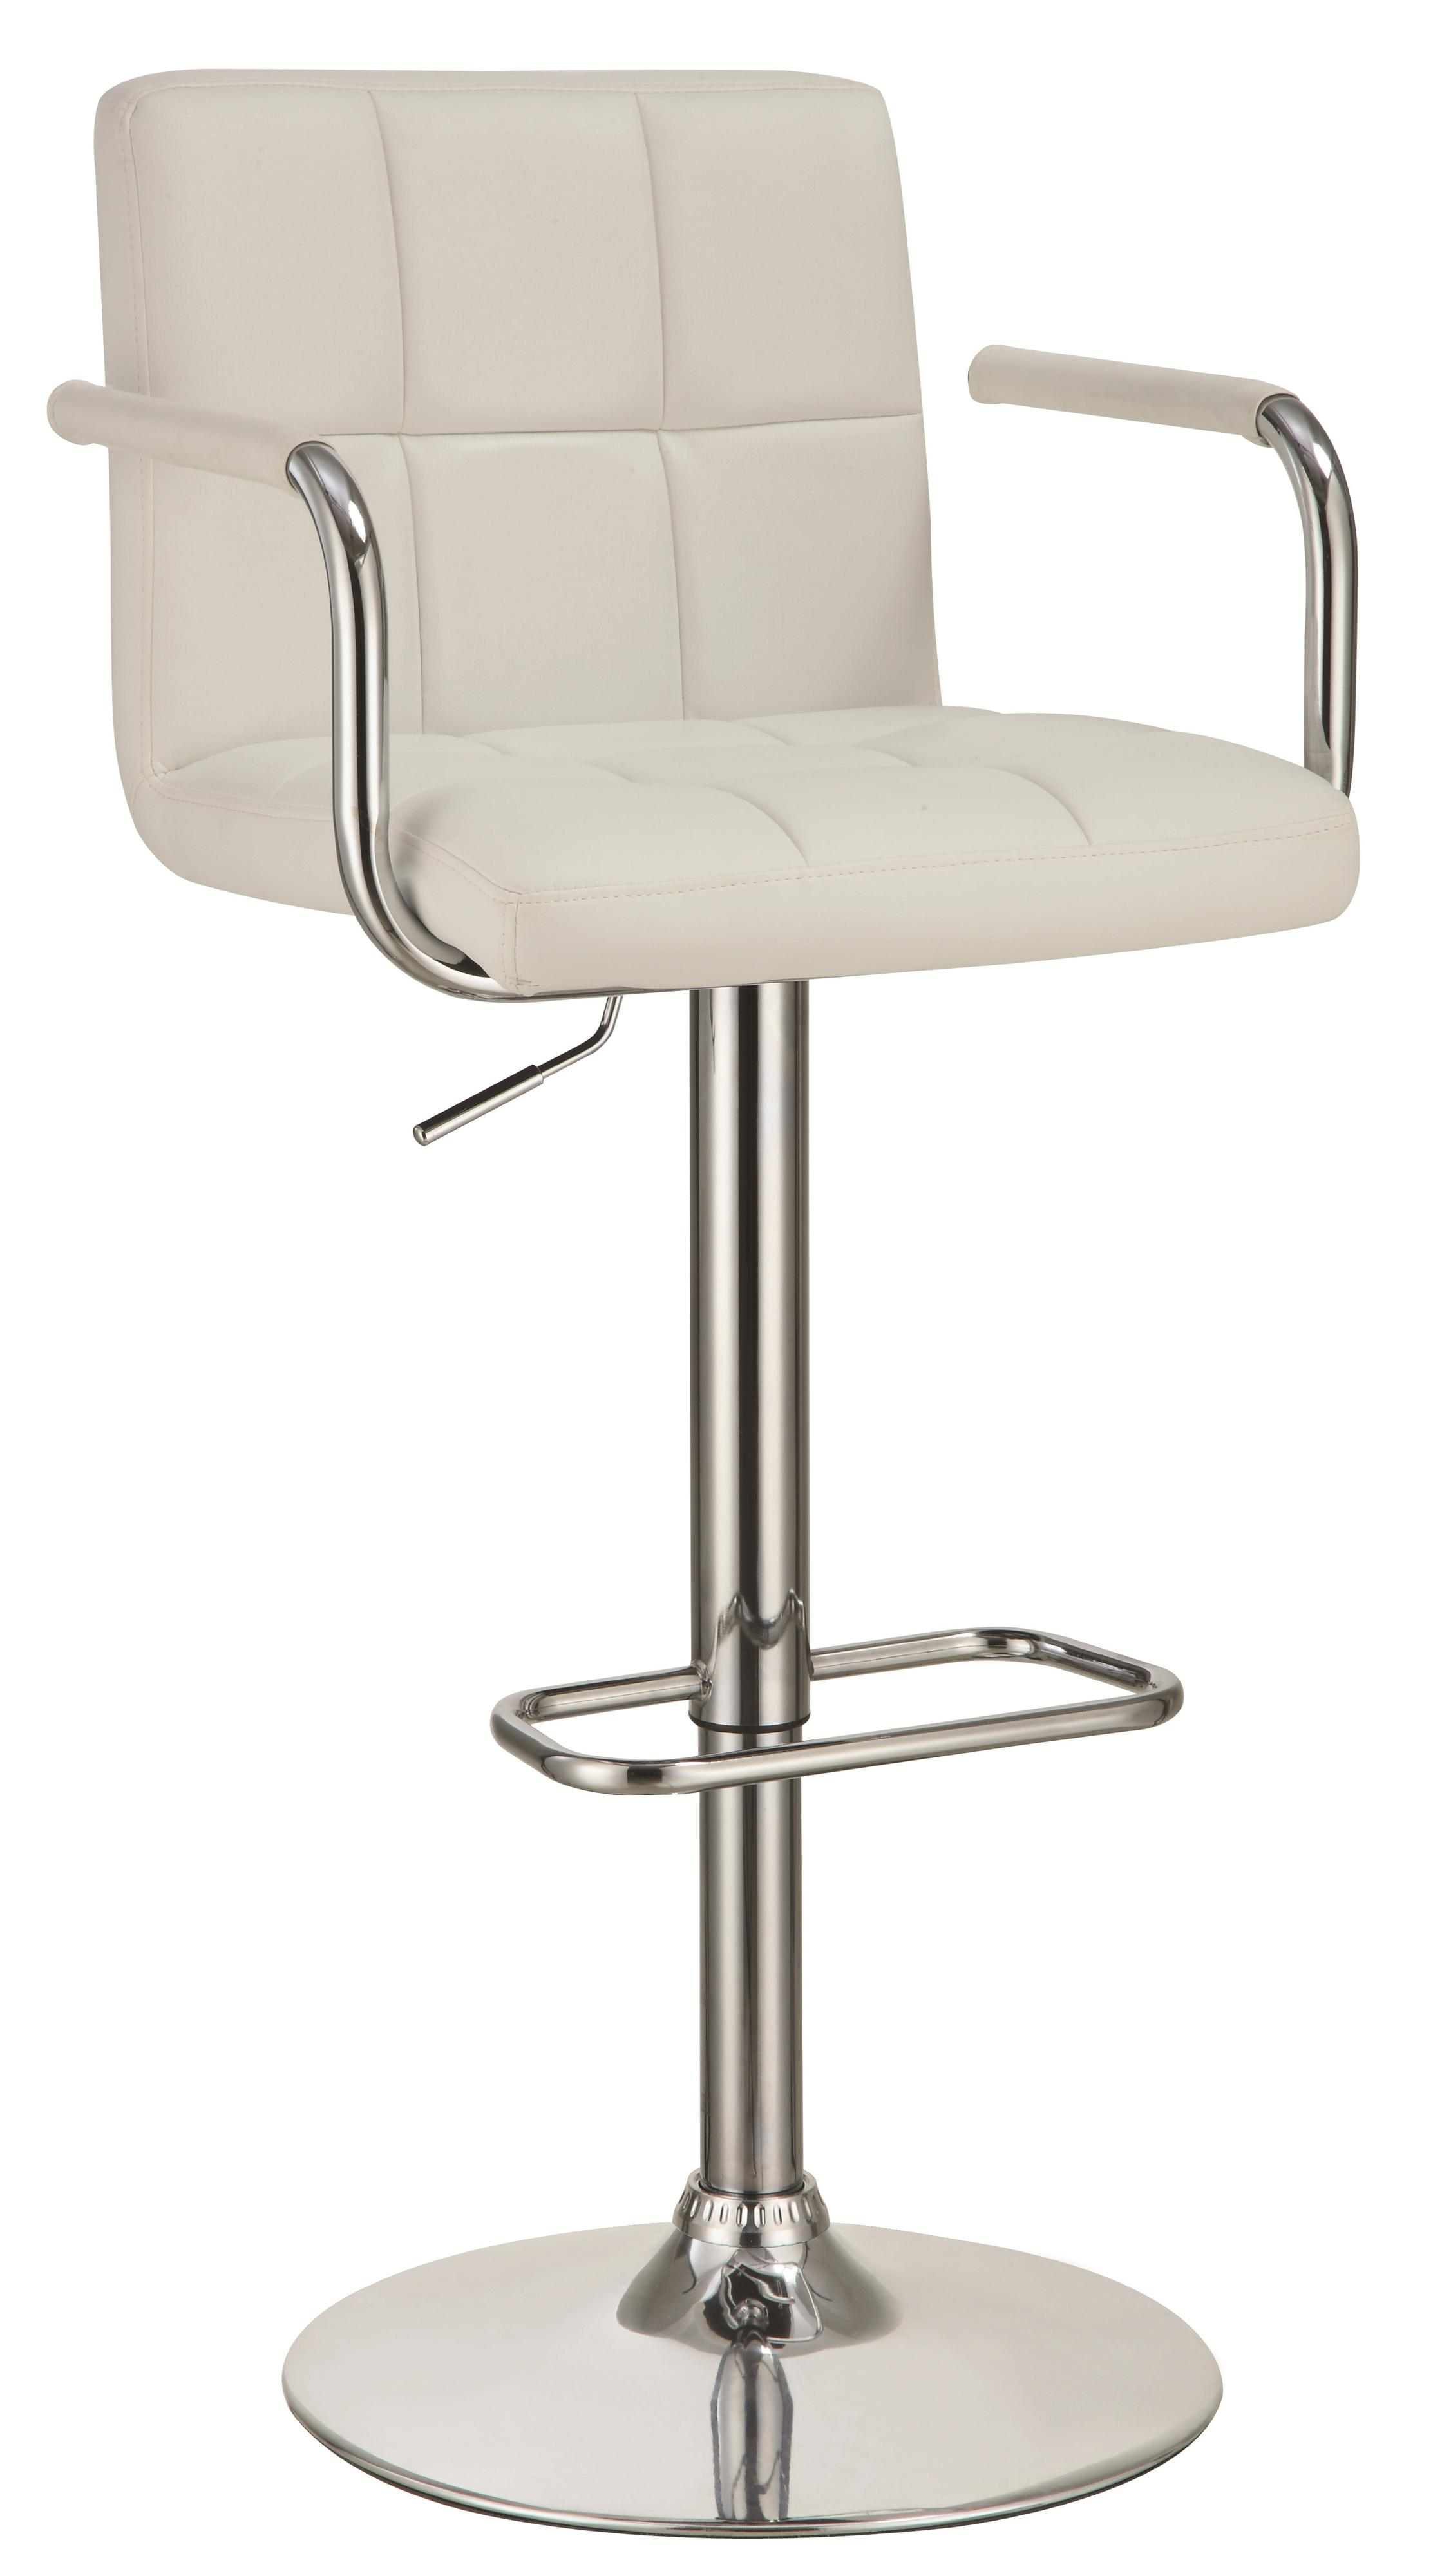 Coaster Dining Chairs and Bar Stools Adjustable Bar Stool - Item Number: 121097